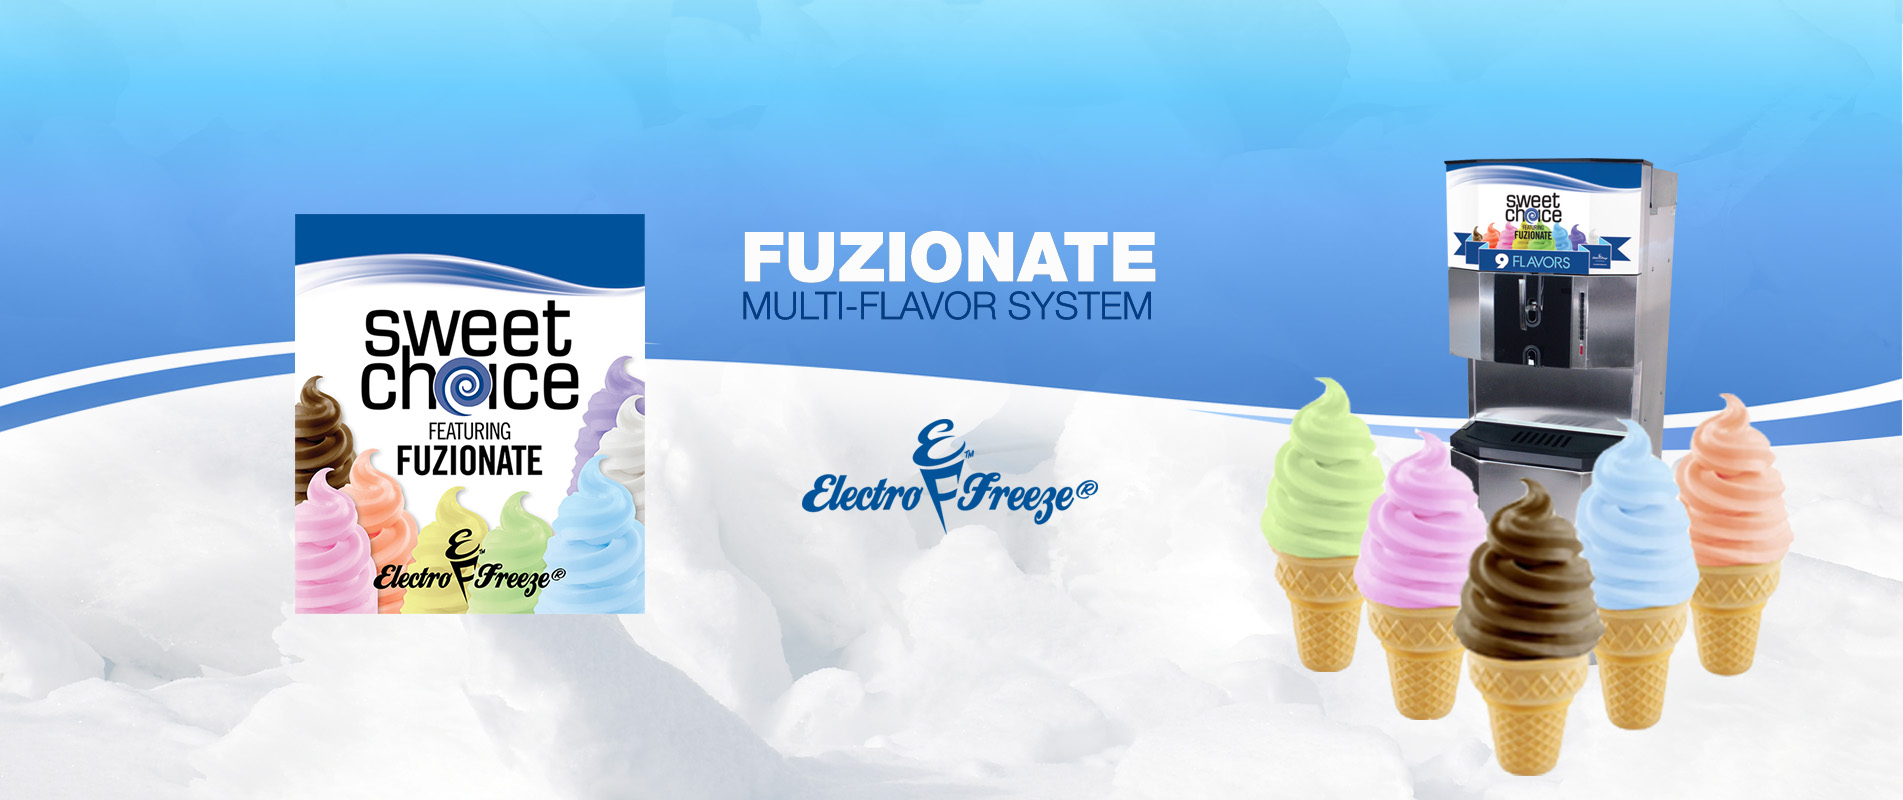 Fuzionate MultiFlavor Systems